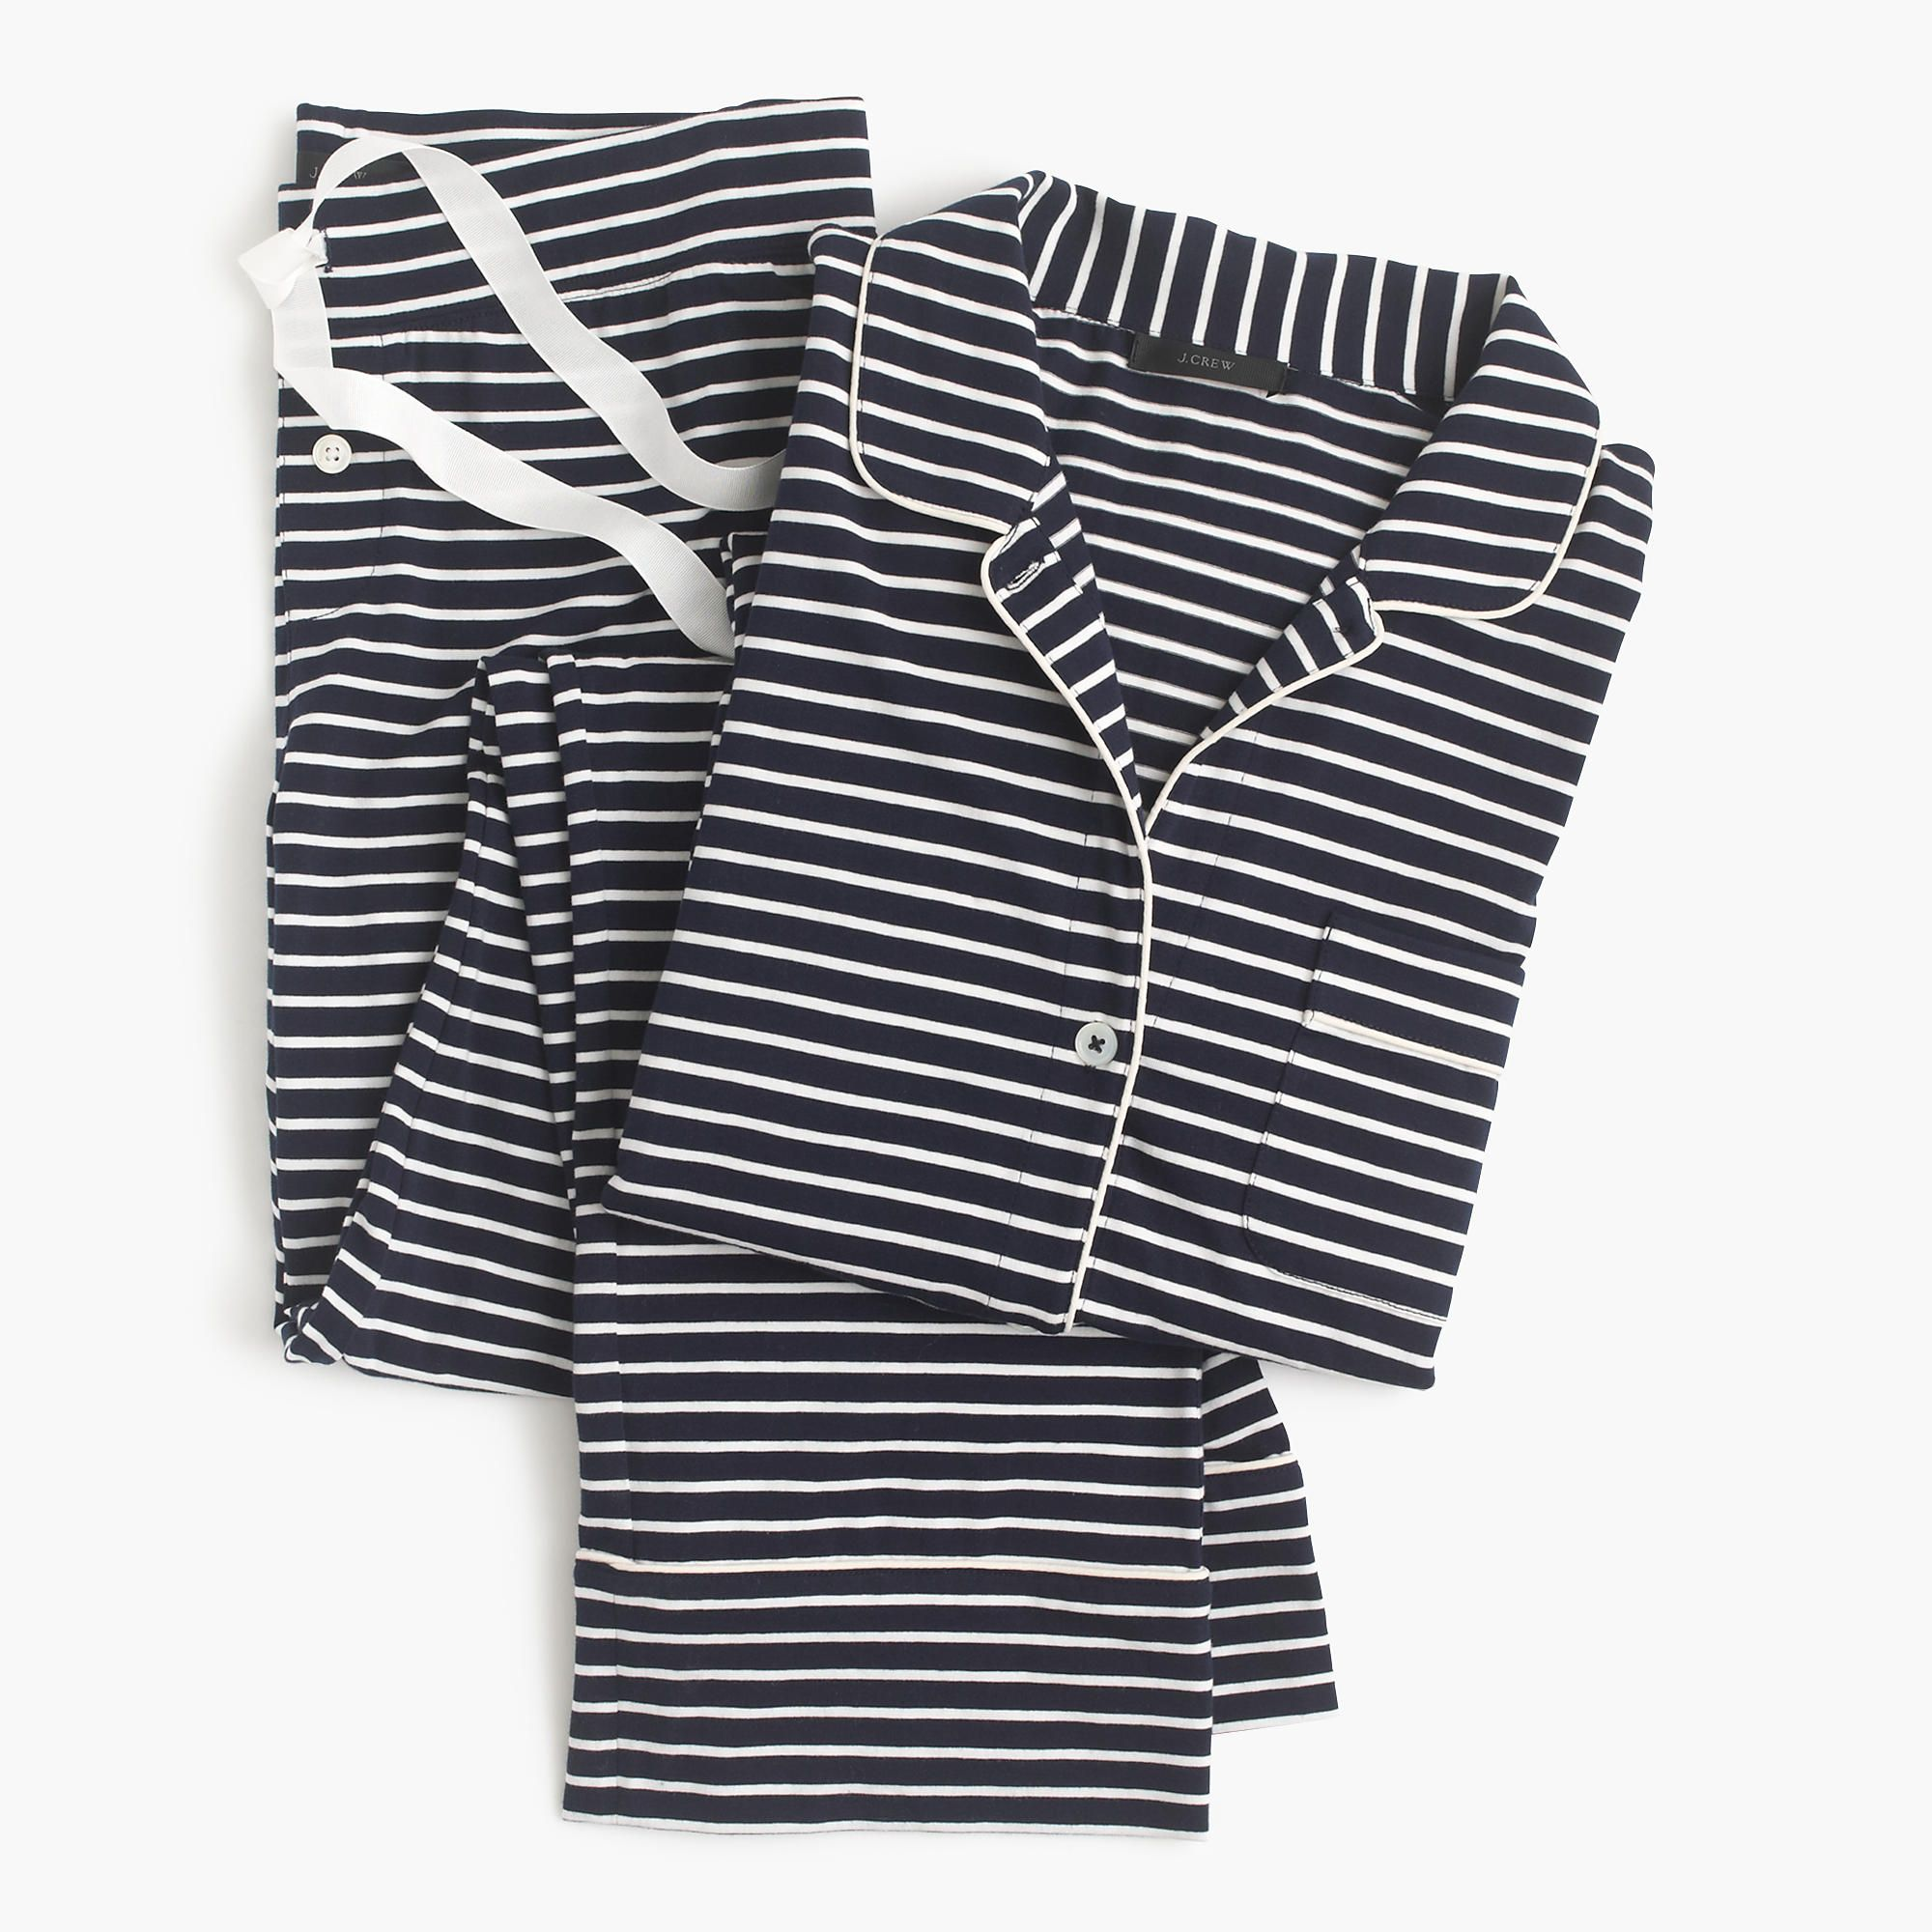 9379b927e Shop the Dreamy Cotton Pajama Set In Stripe at JCrew.com and see our entire  selection of Women's Pajamas & Sleepwear.